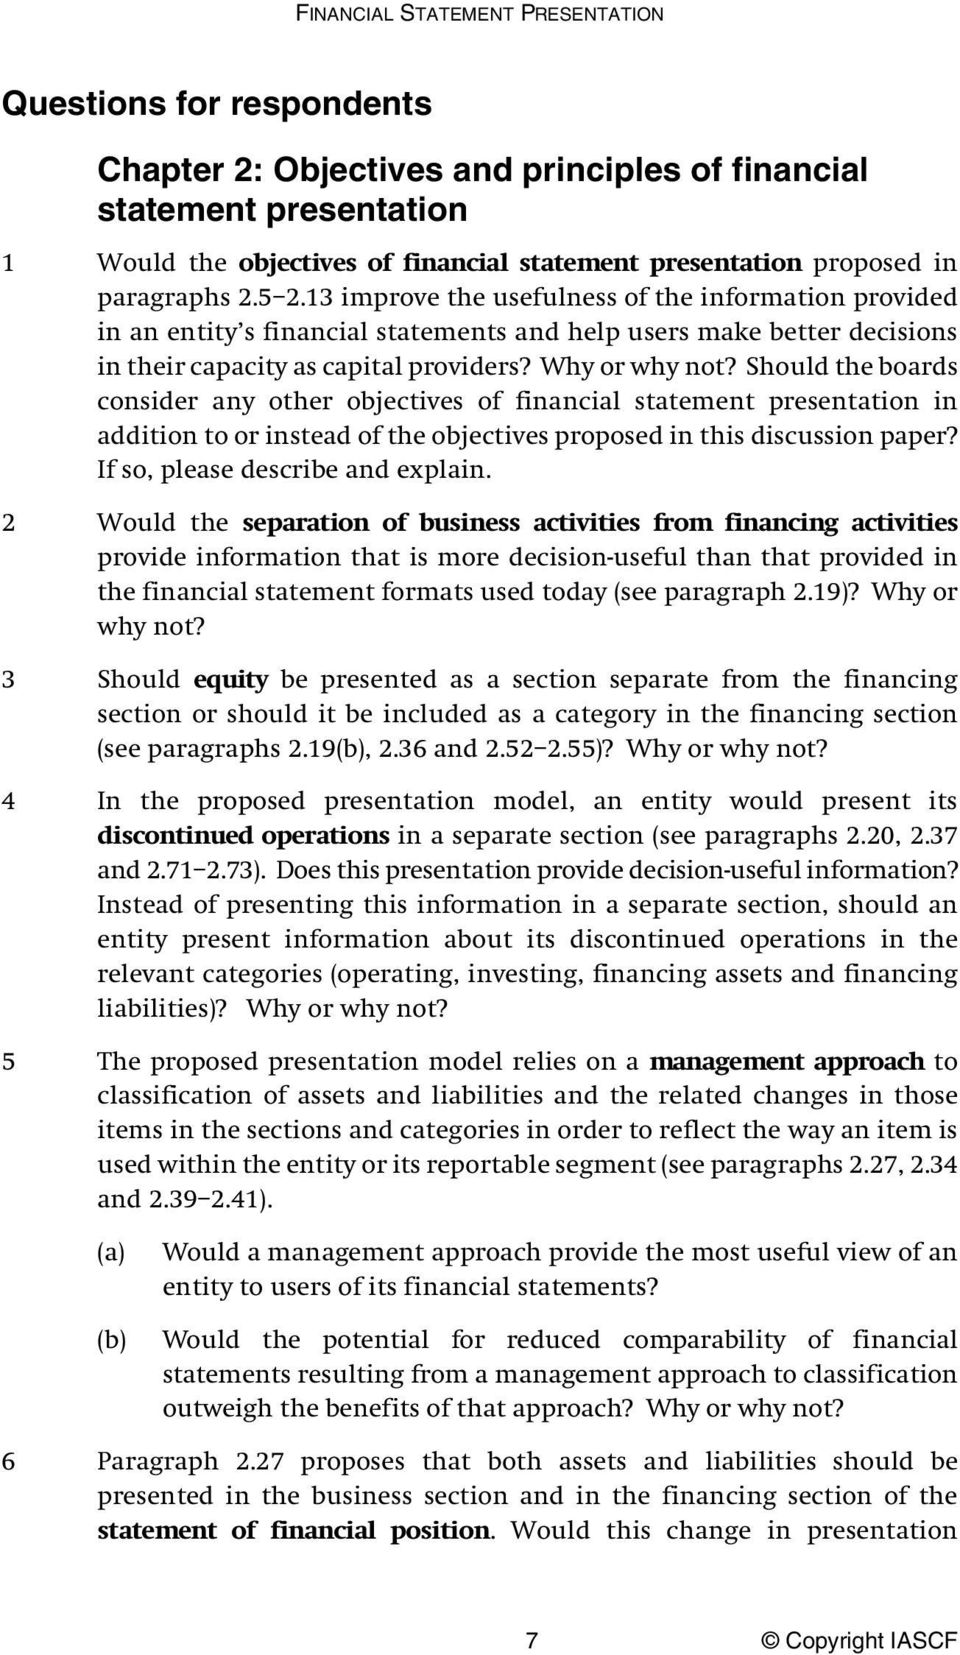 Why or why not? Should the boards consider any other objectives of financial statement presentation in addition to or instead of the objectives proposed in this discussion paper?